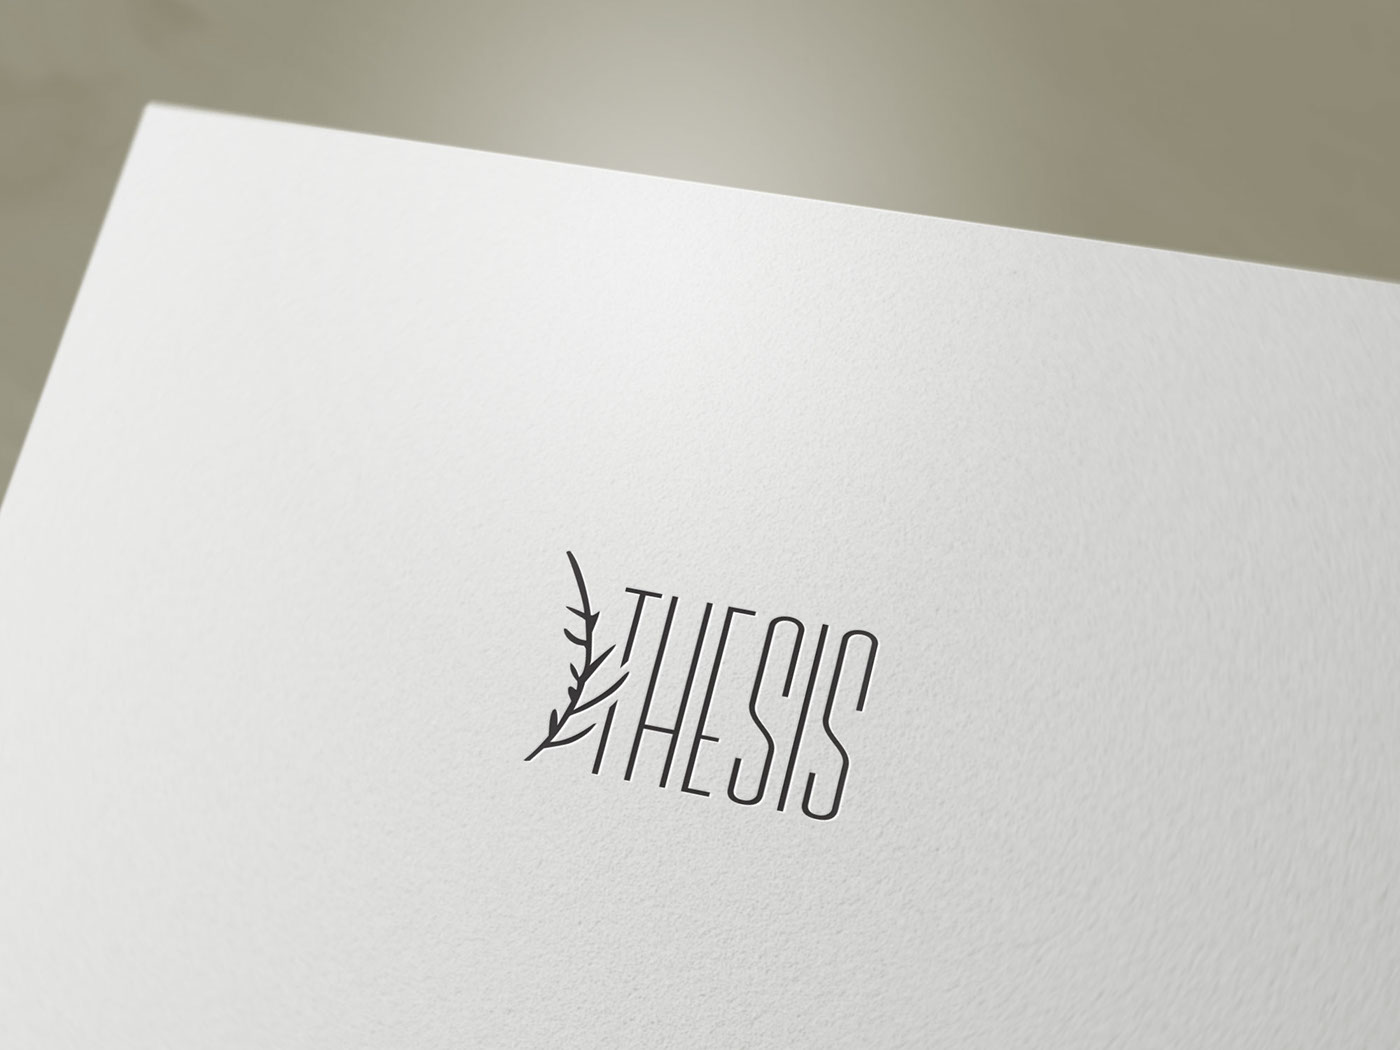 thesis beauty on behance